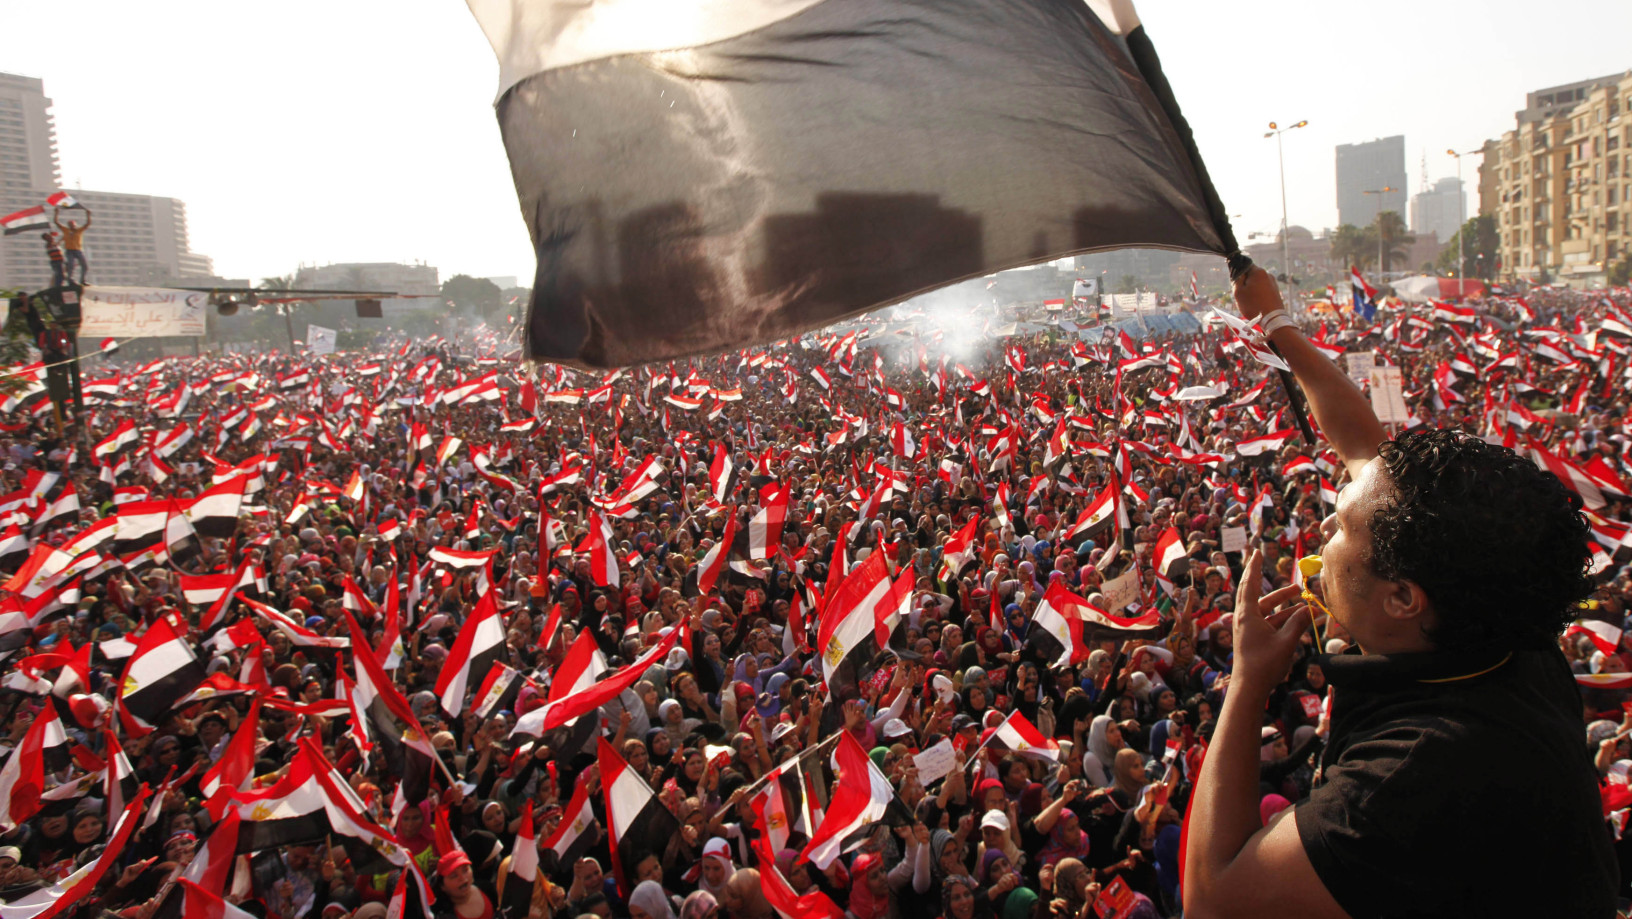 Protesters opposing Egyptian President Mohammed Morsi wave flags in Tahrir Square in Cairo in 2013. Shortly afterward, the military staged a coup, ousting Morsi and suspending the constitution. (Mohamed Abd El Ghany/Reuters)